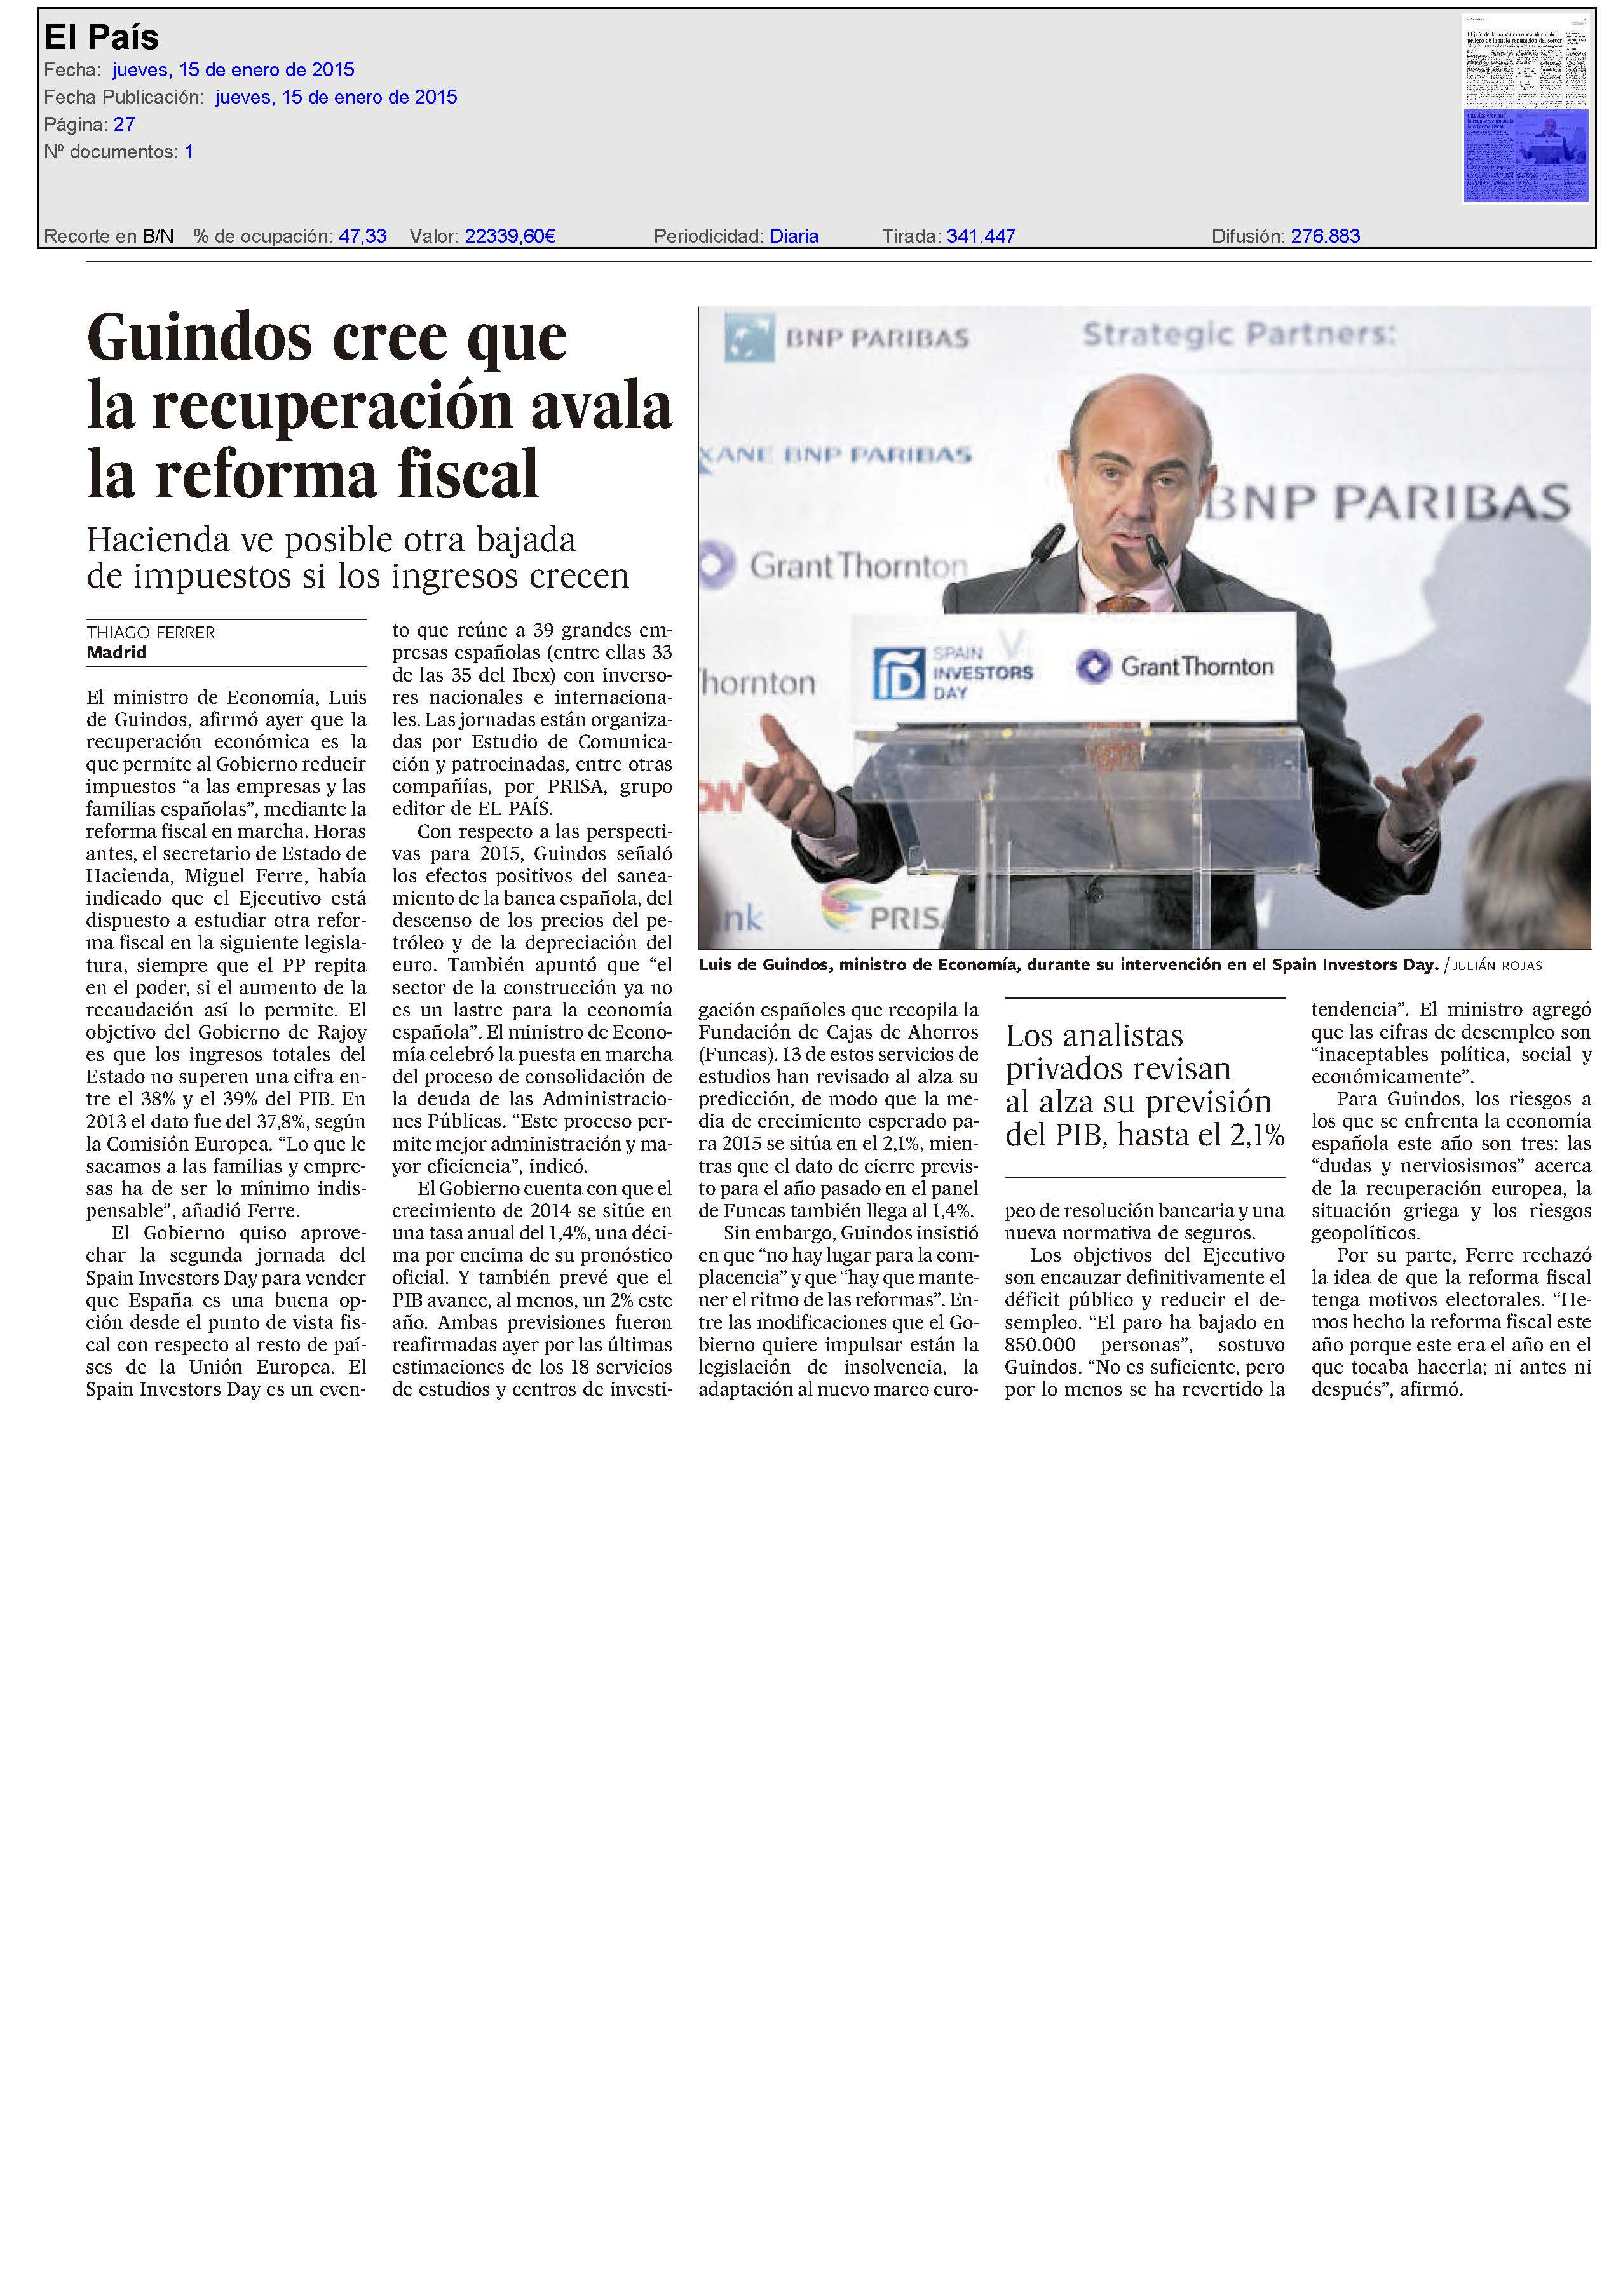 Noticiasenprensa-elpais-150115